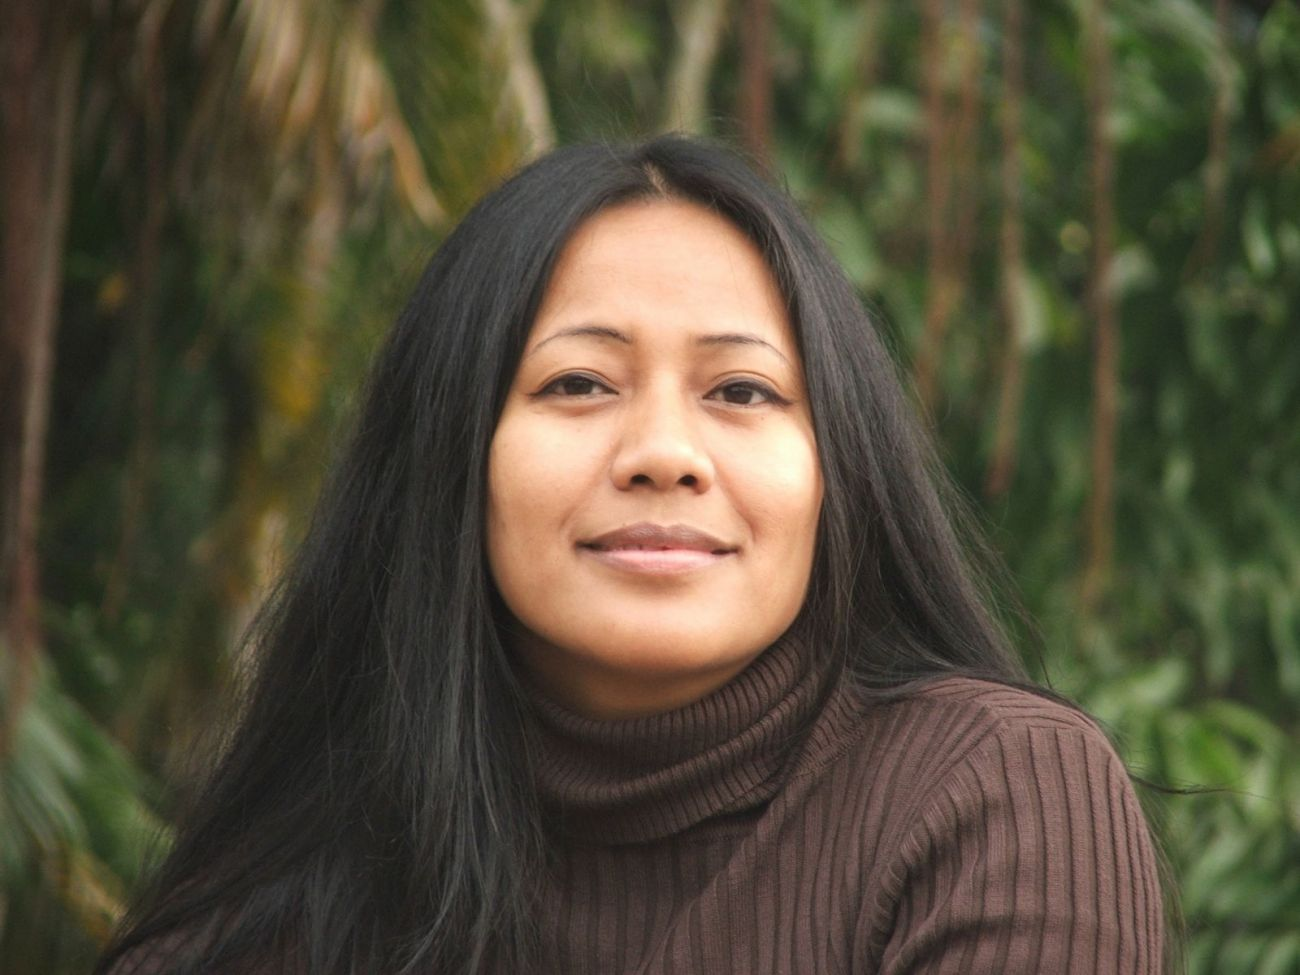 Manipuri Woman in Top 100 most influential people in world on armed violence reduction